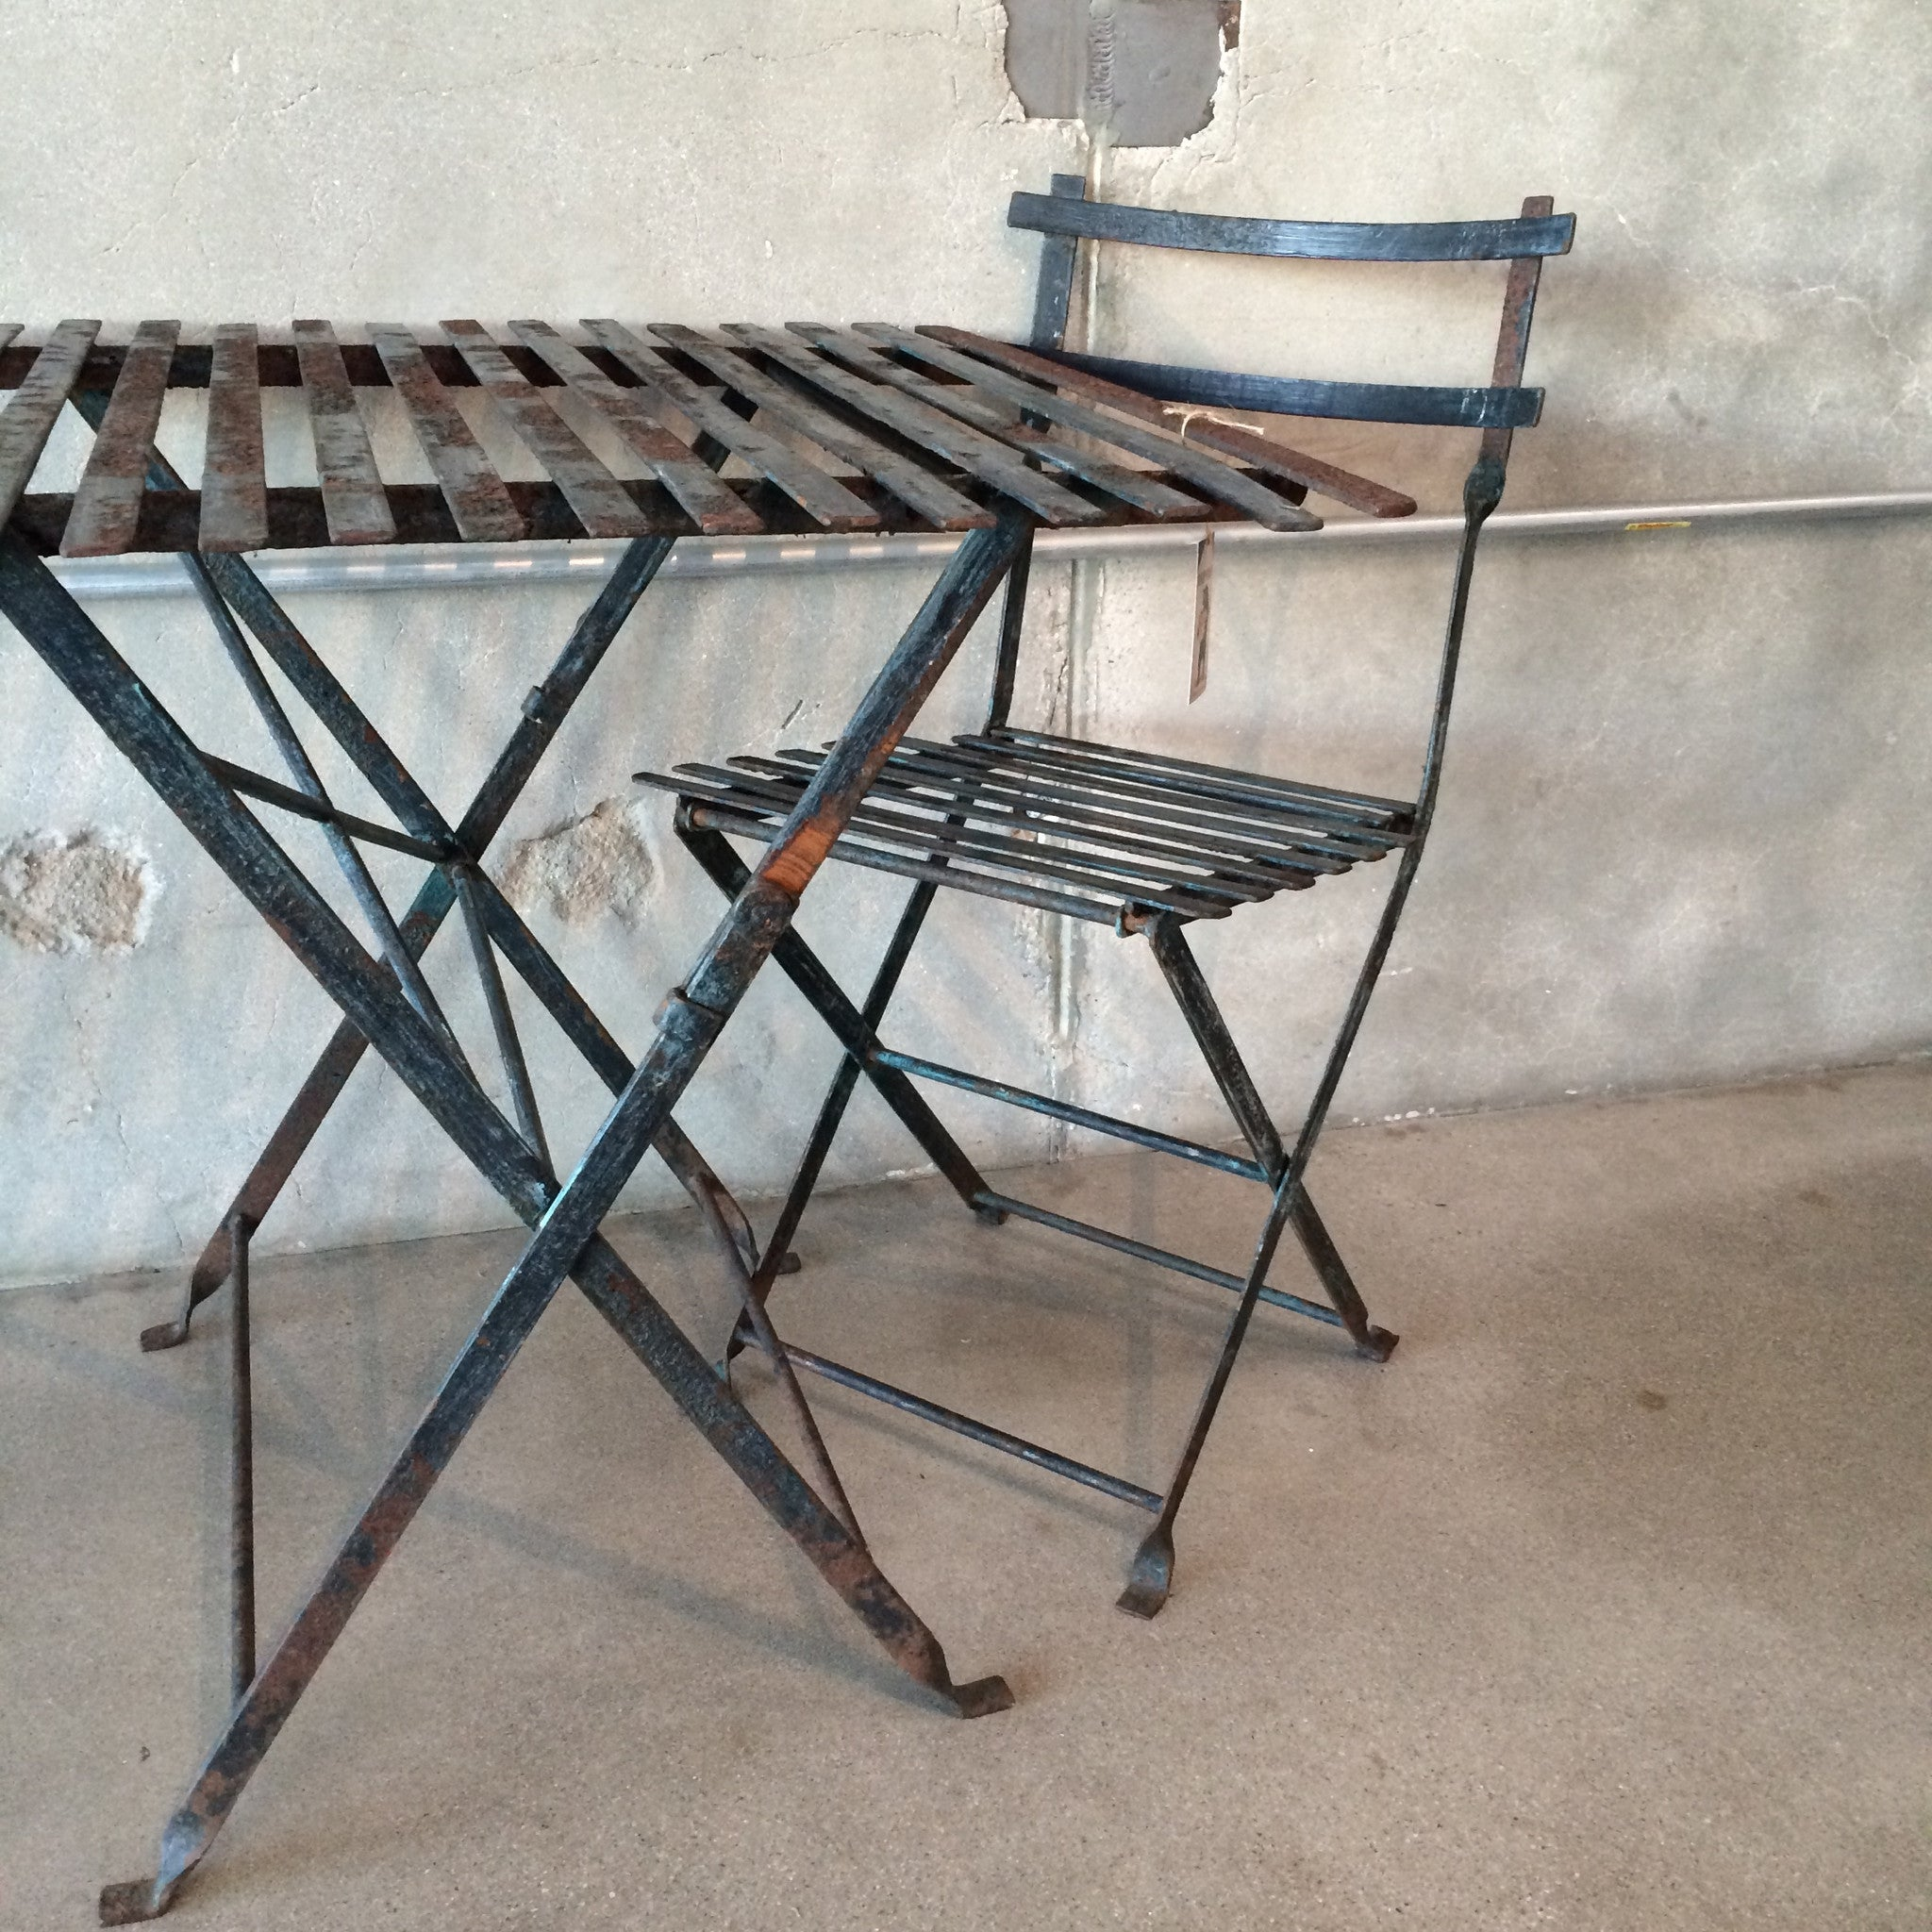 Antique Wrought Iron Patio Table and Chairs – UrbanAmericana